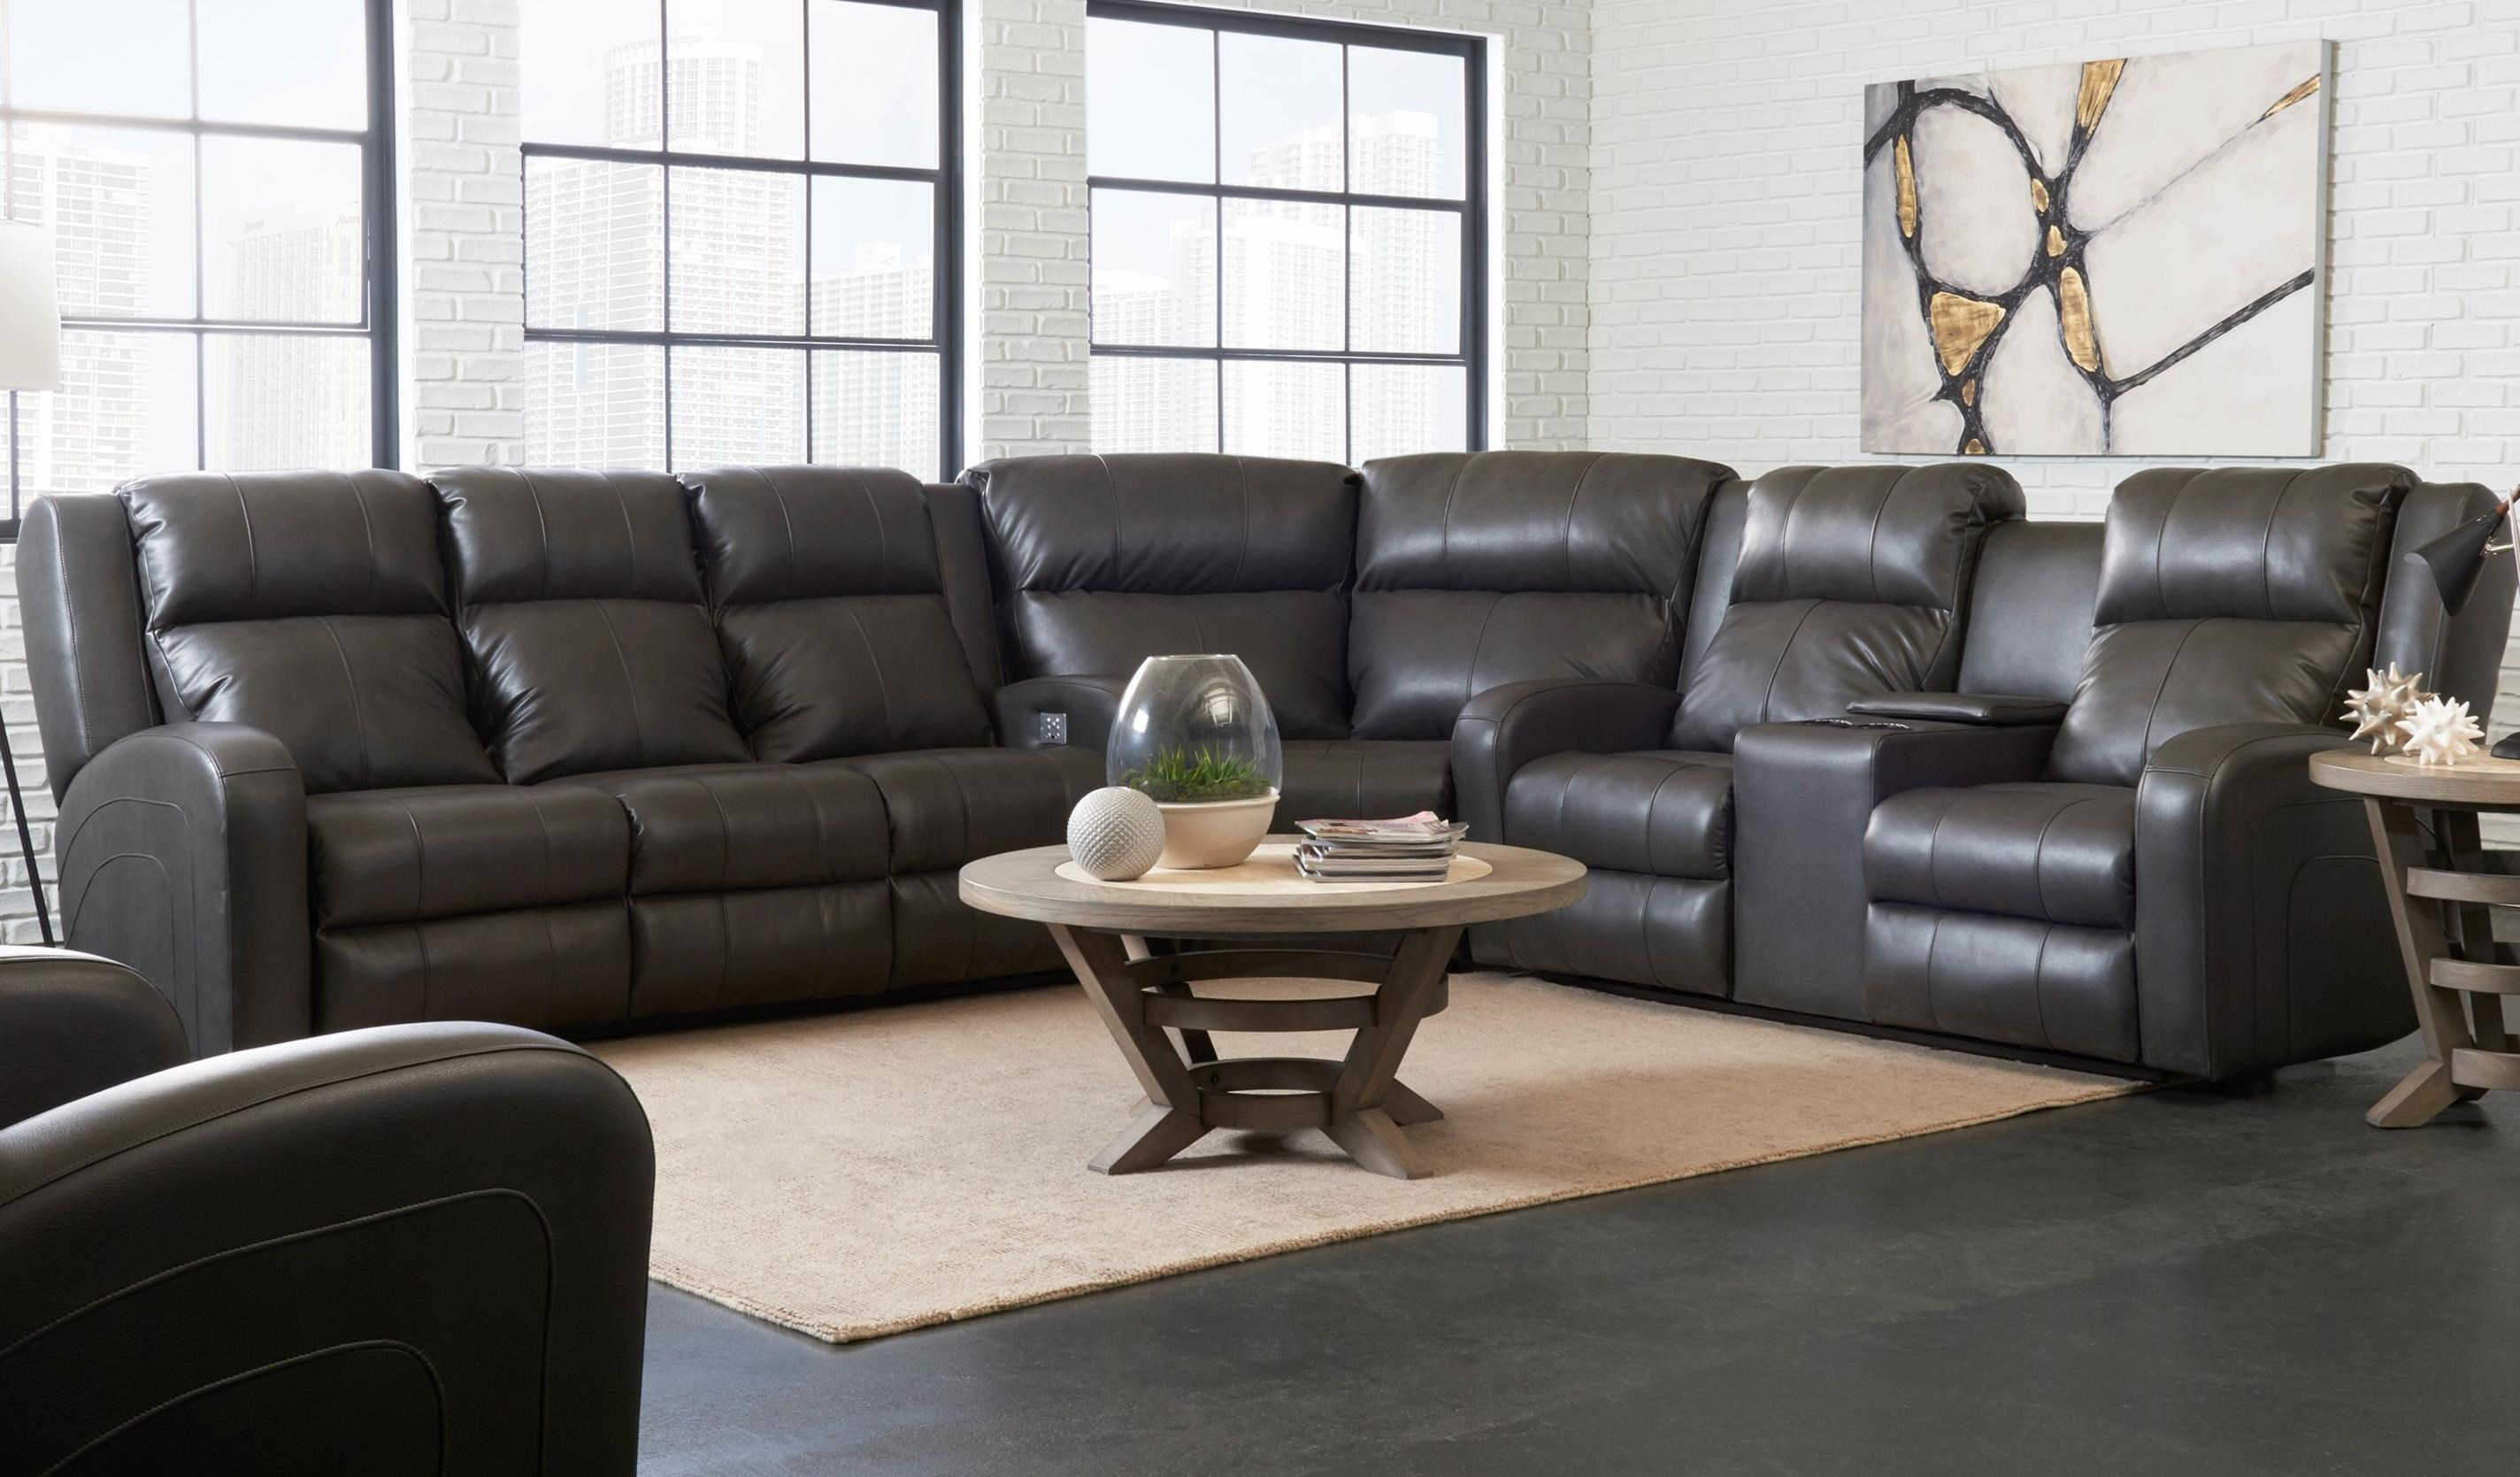 Klaussner Robinson Casual Three Piece Reclining Sectional Sofa with ...